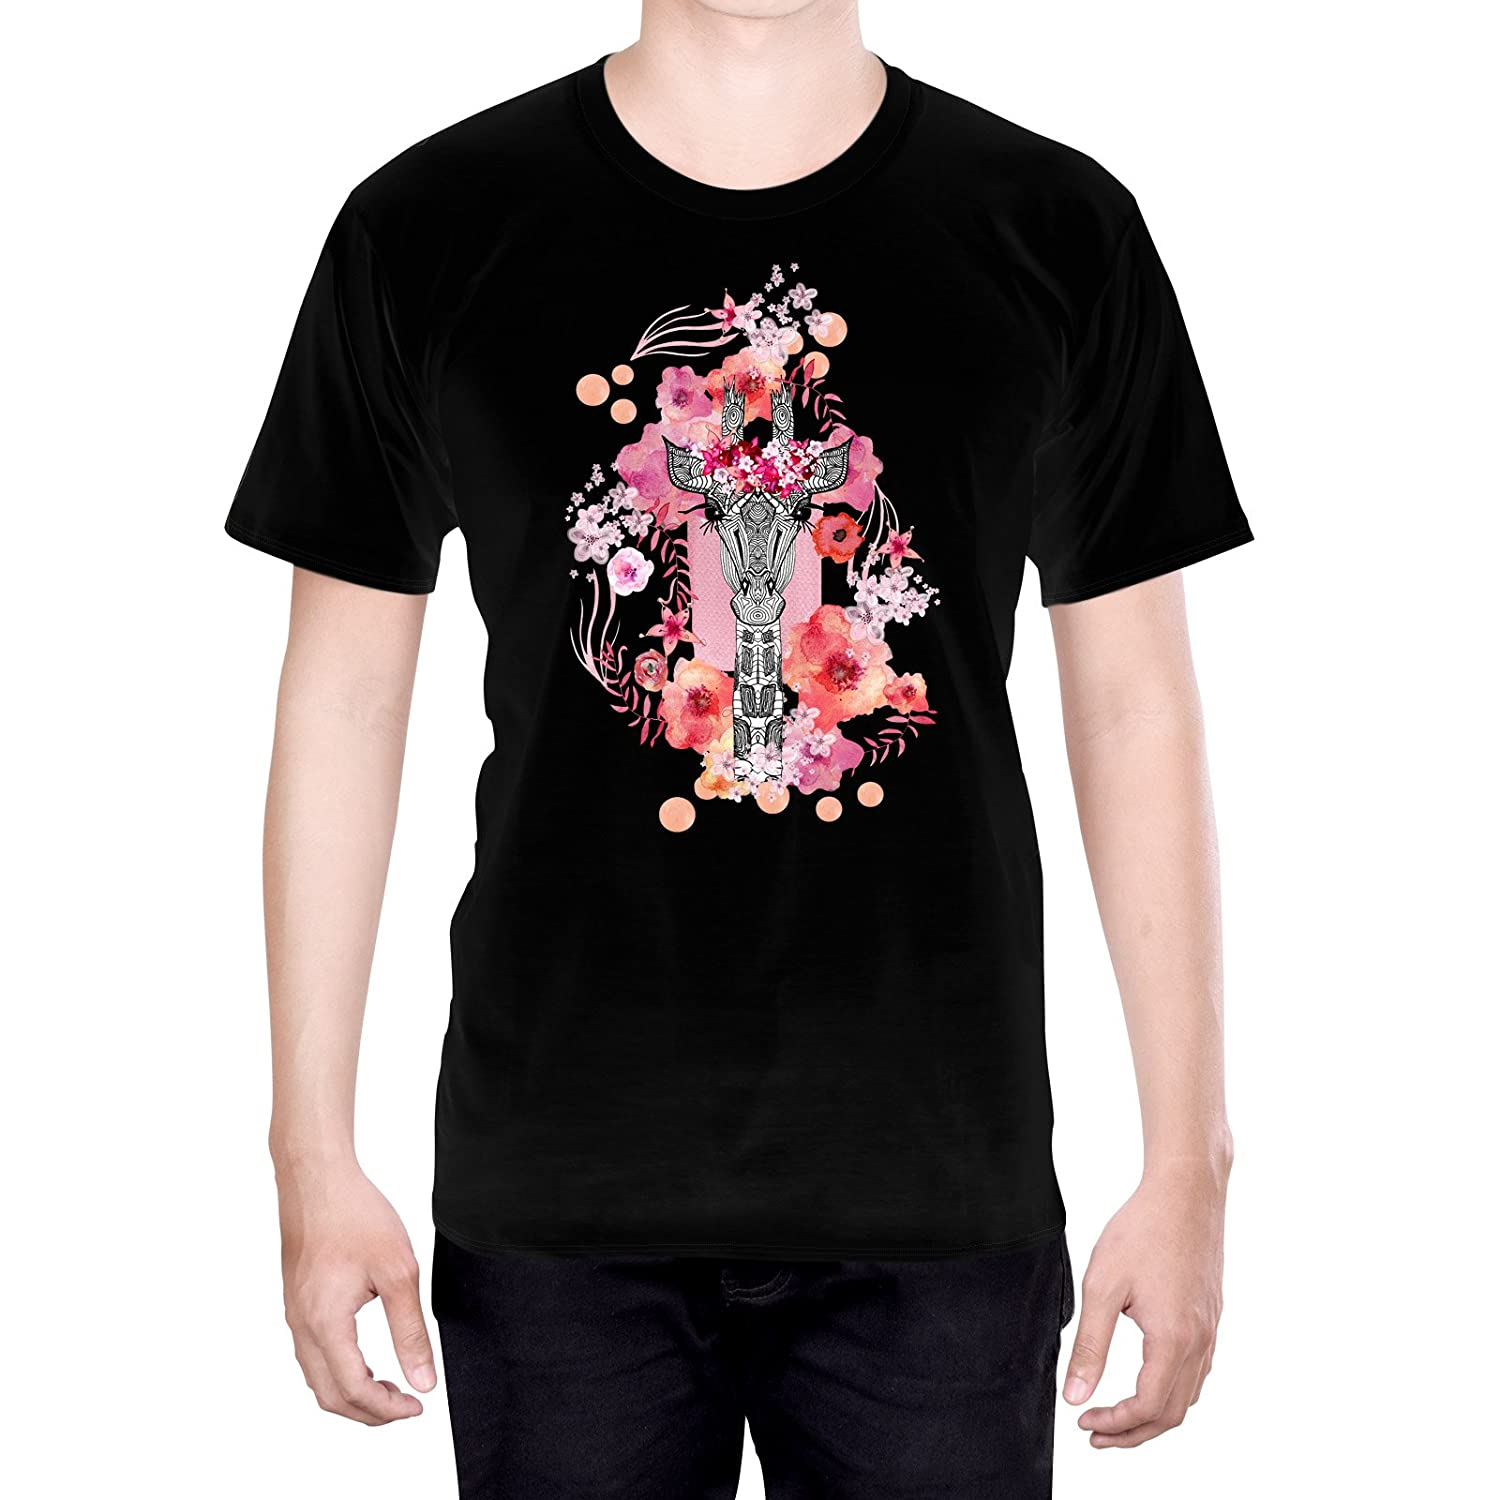 Official Sylvie Demers Rouge Love Art S - Small Black T-Shirt for Men